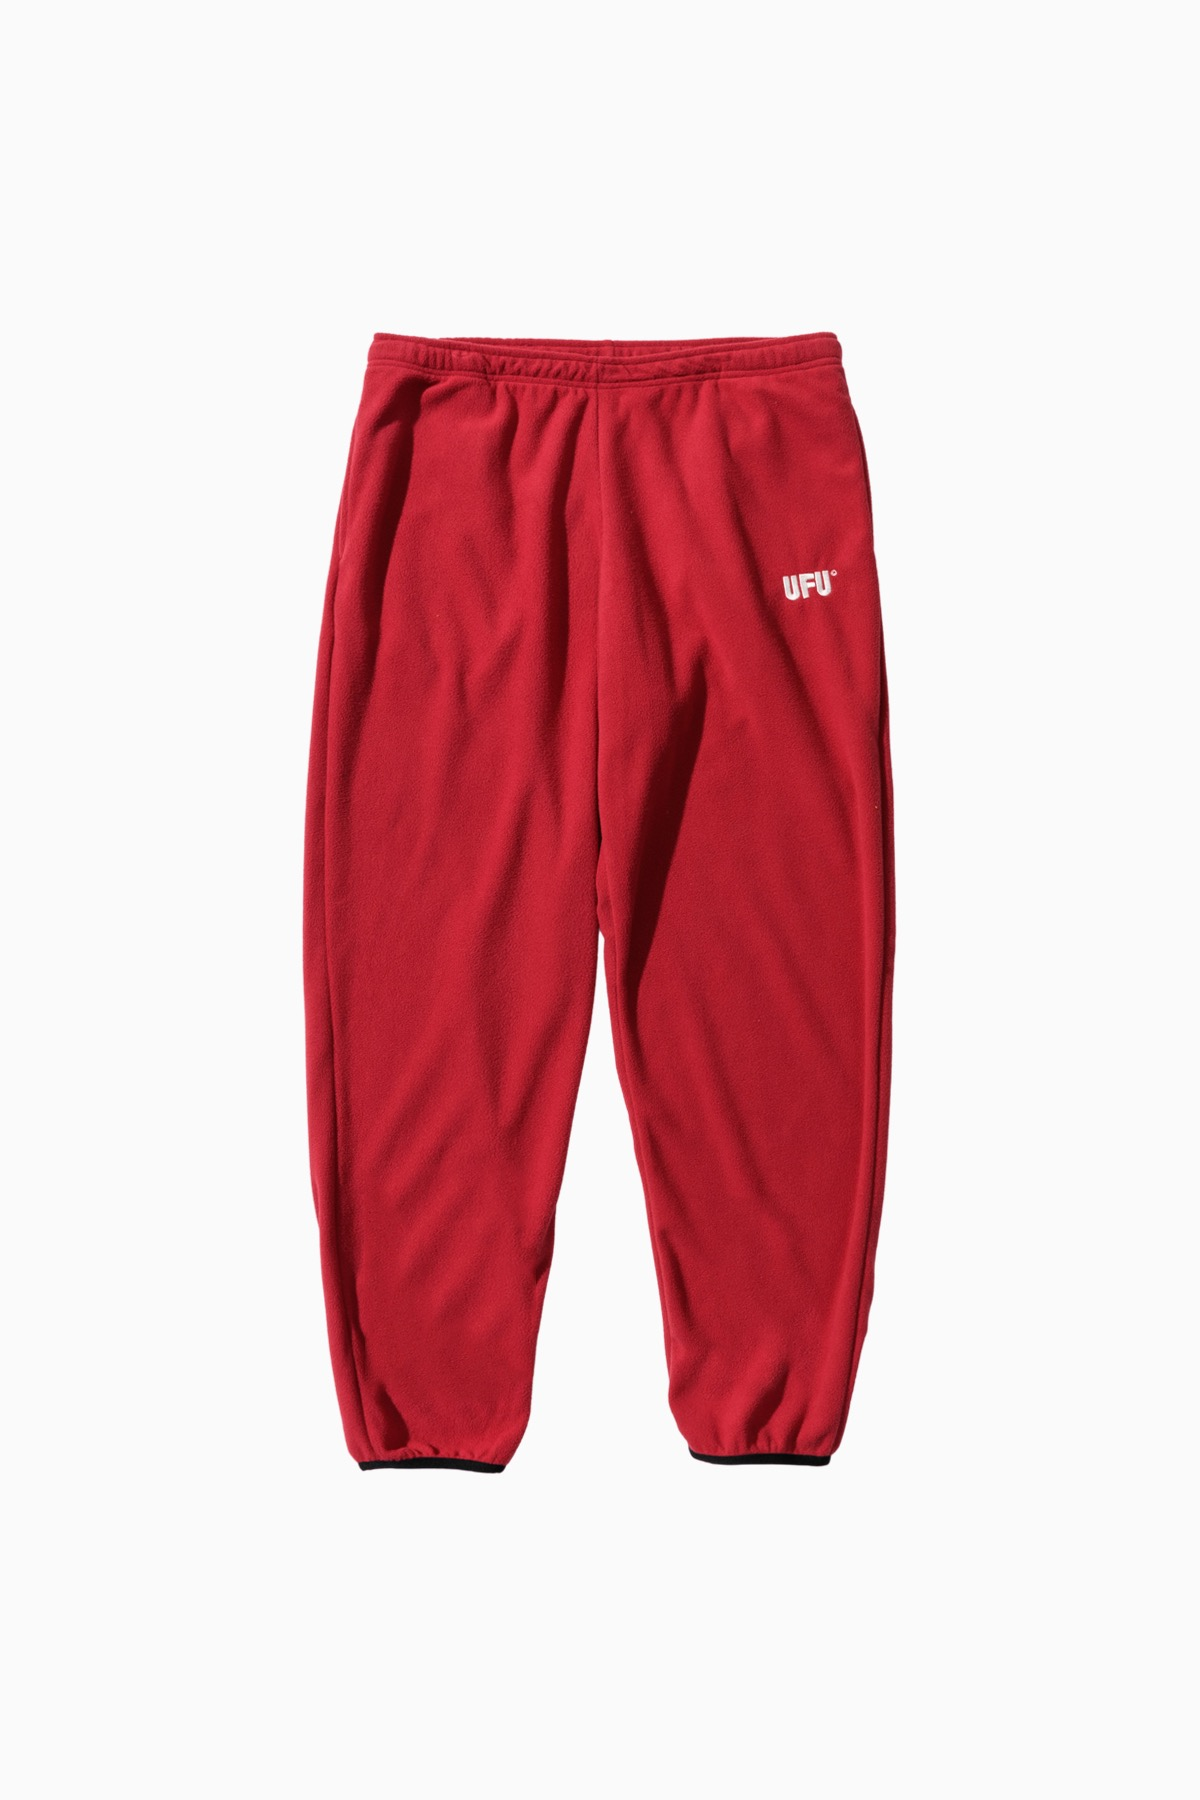 KEVIN PANTS_BURGUNDY